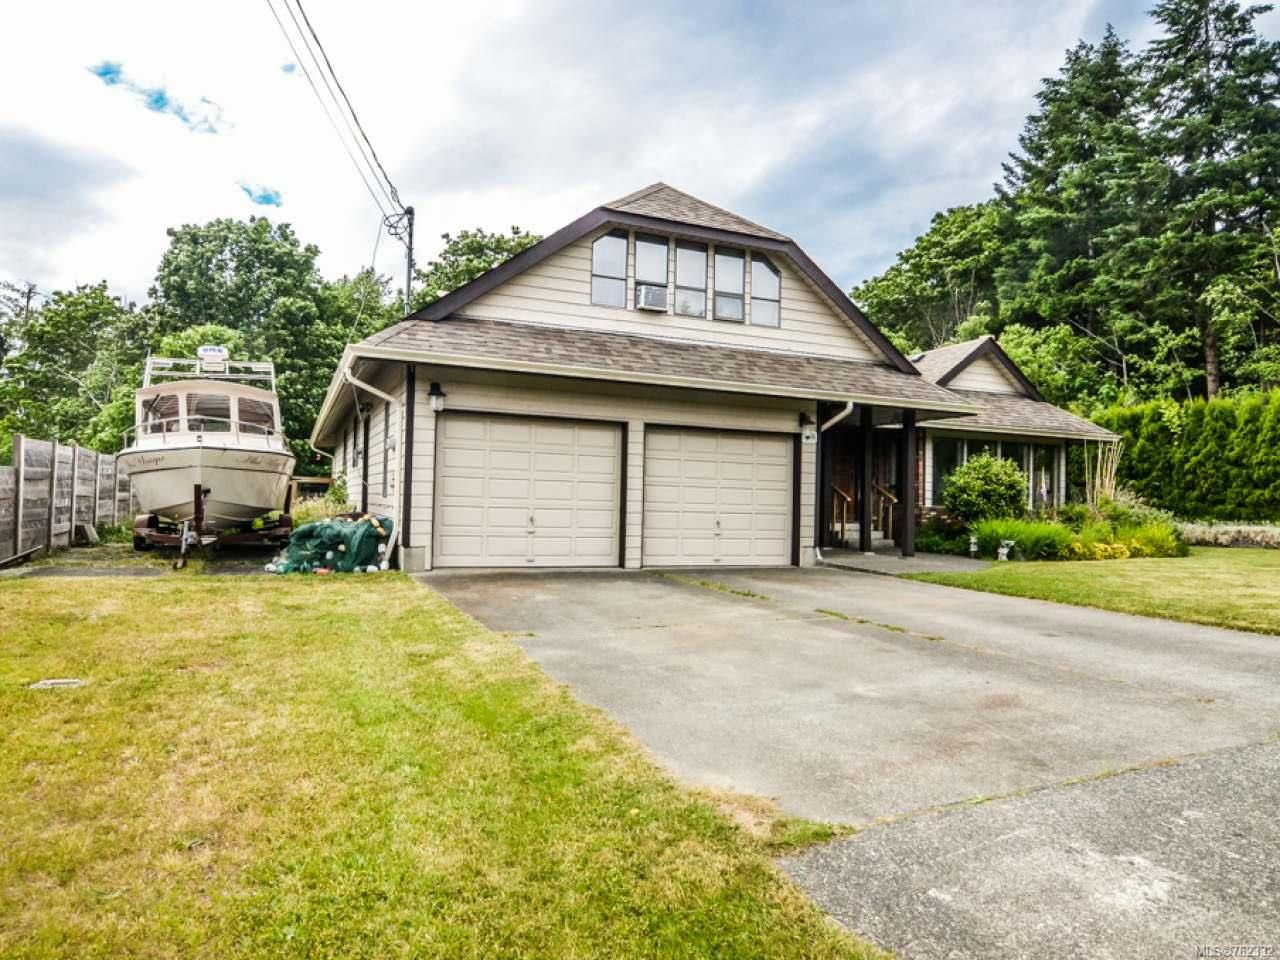 Photo 47: Photos: 1656 Galerno Rd in CAMPBELL RIVER: CR Campbell River Central House for sale (Campbell River)  : MLS®# 762332